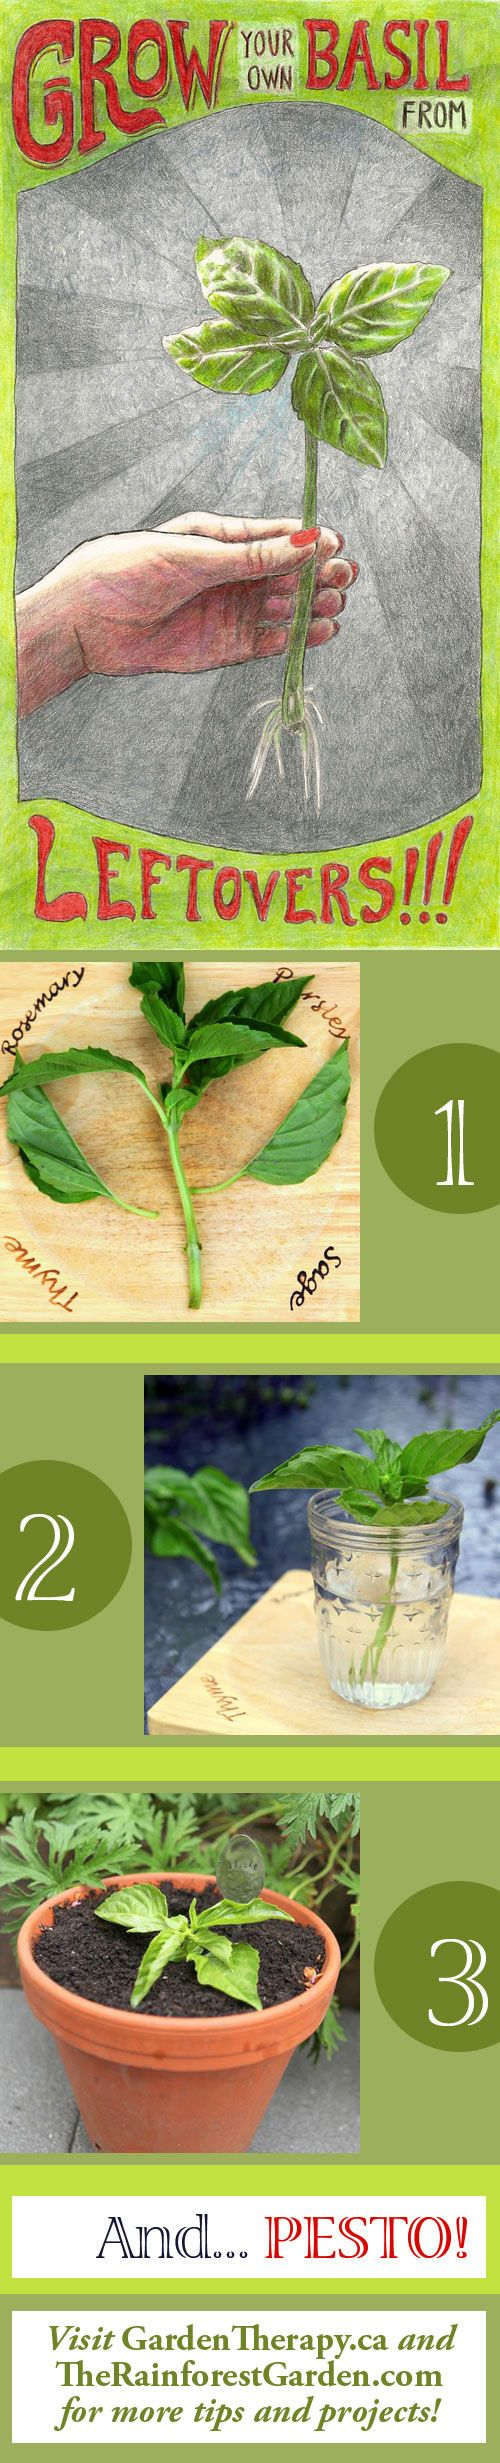 How to Grow Basil from Cuttings -